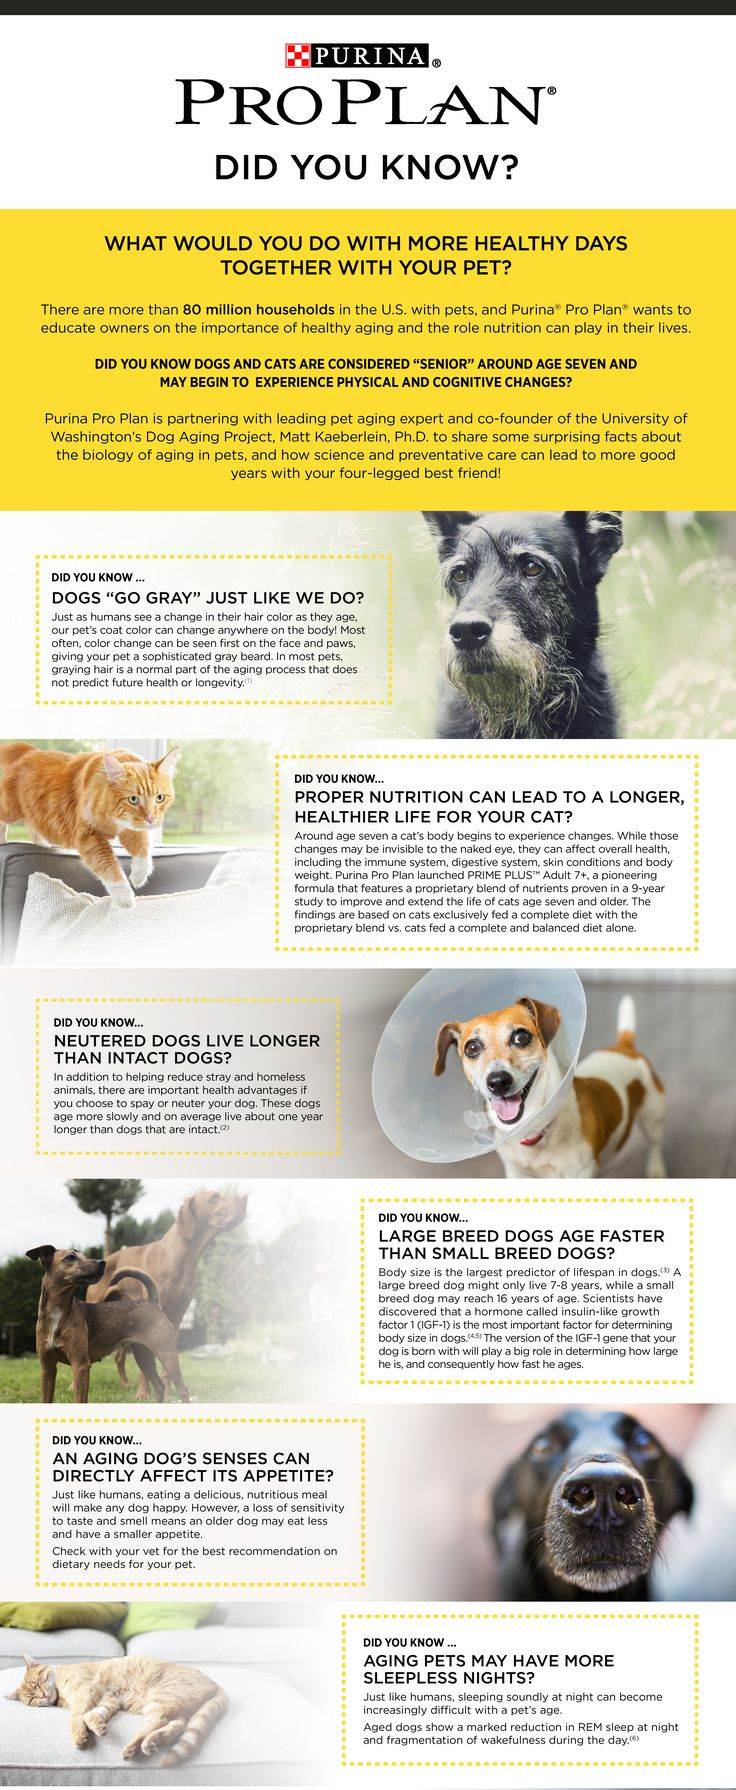 Purina Pro Plan Teamed Up With Dr Kaeberlein From The Dog Aging Project To  Bring